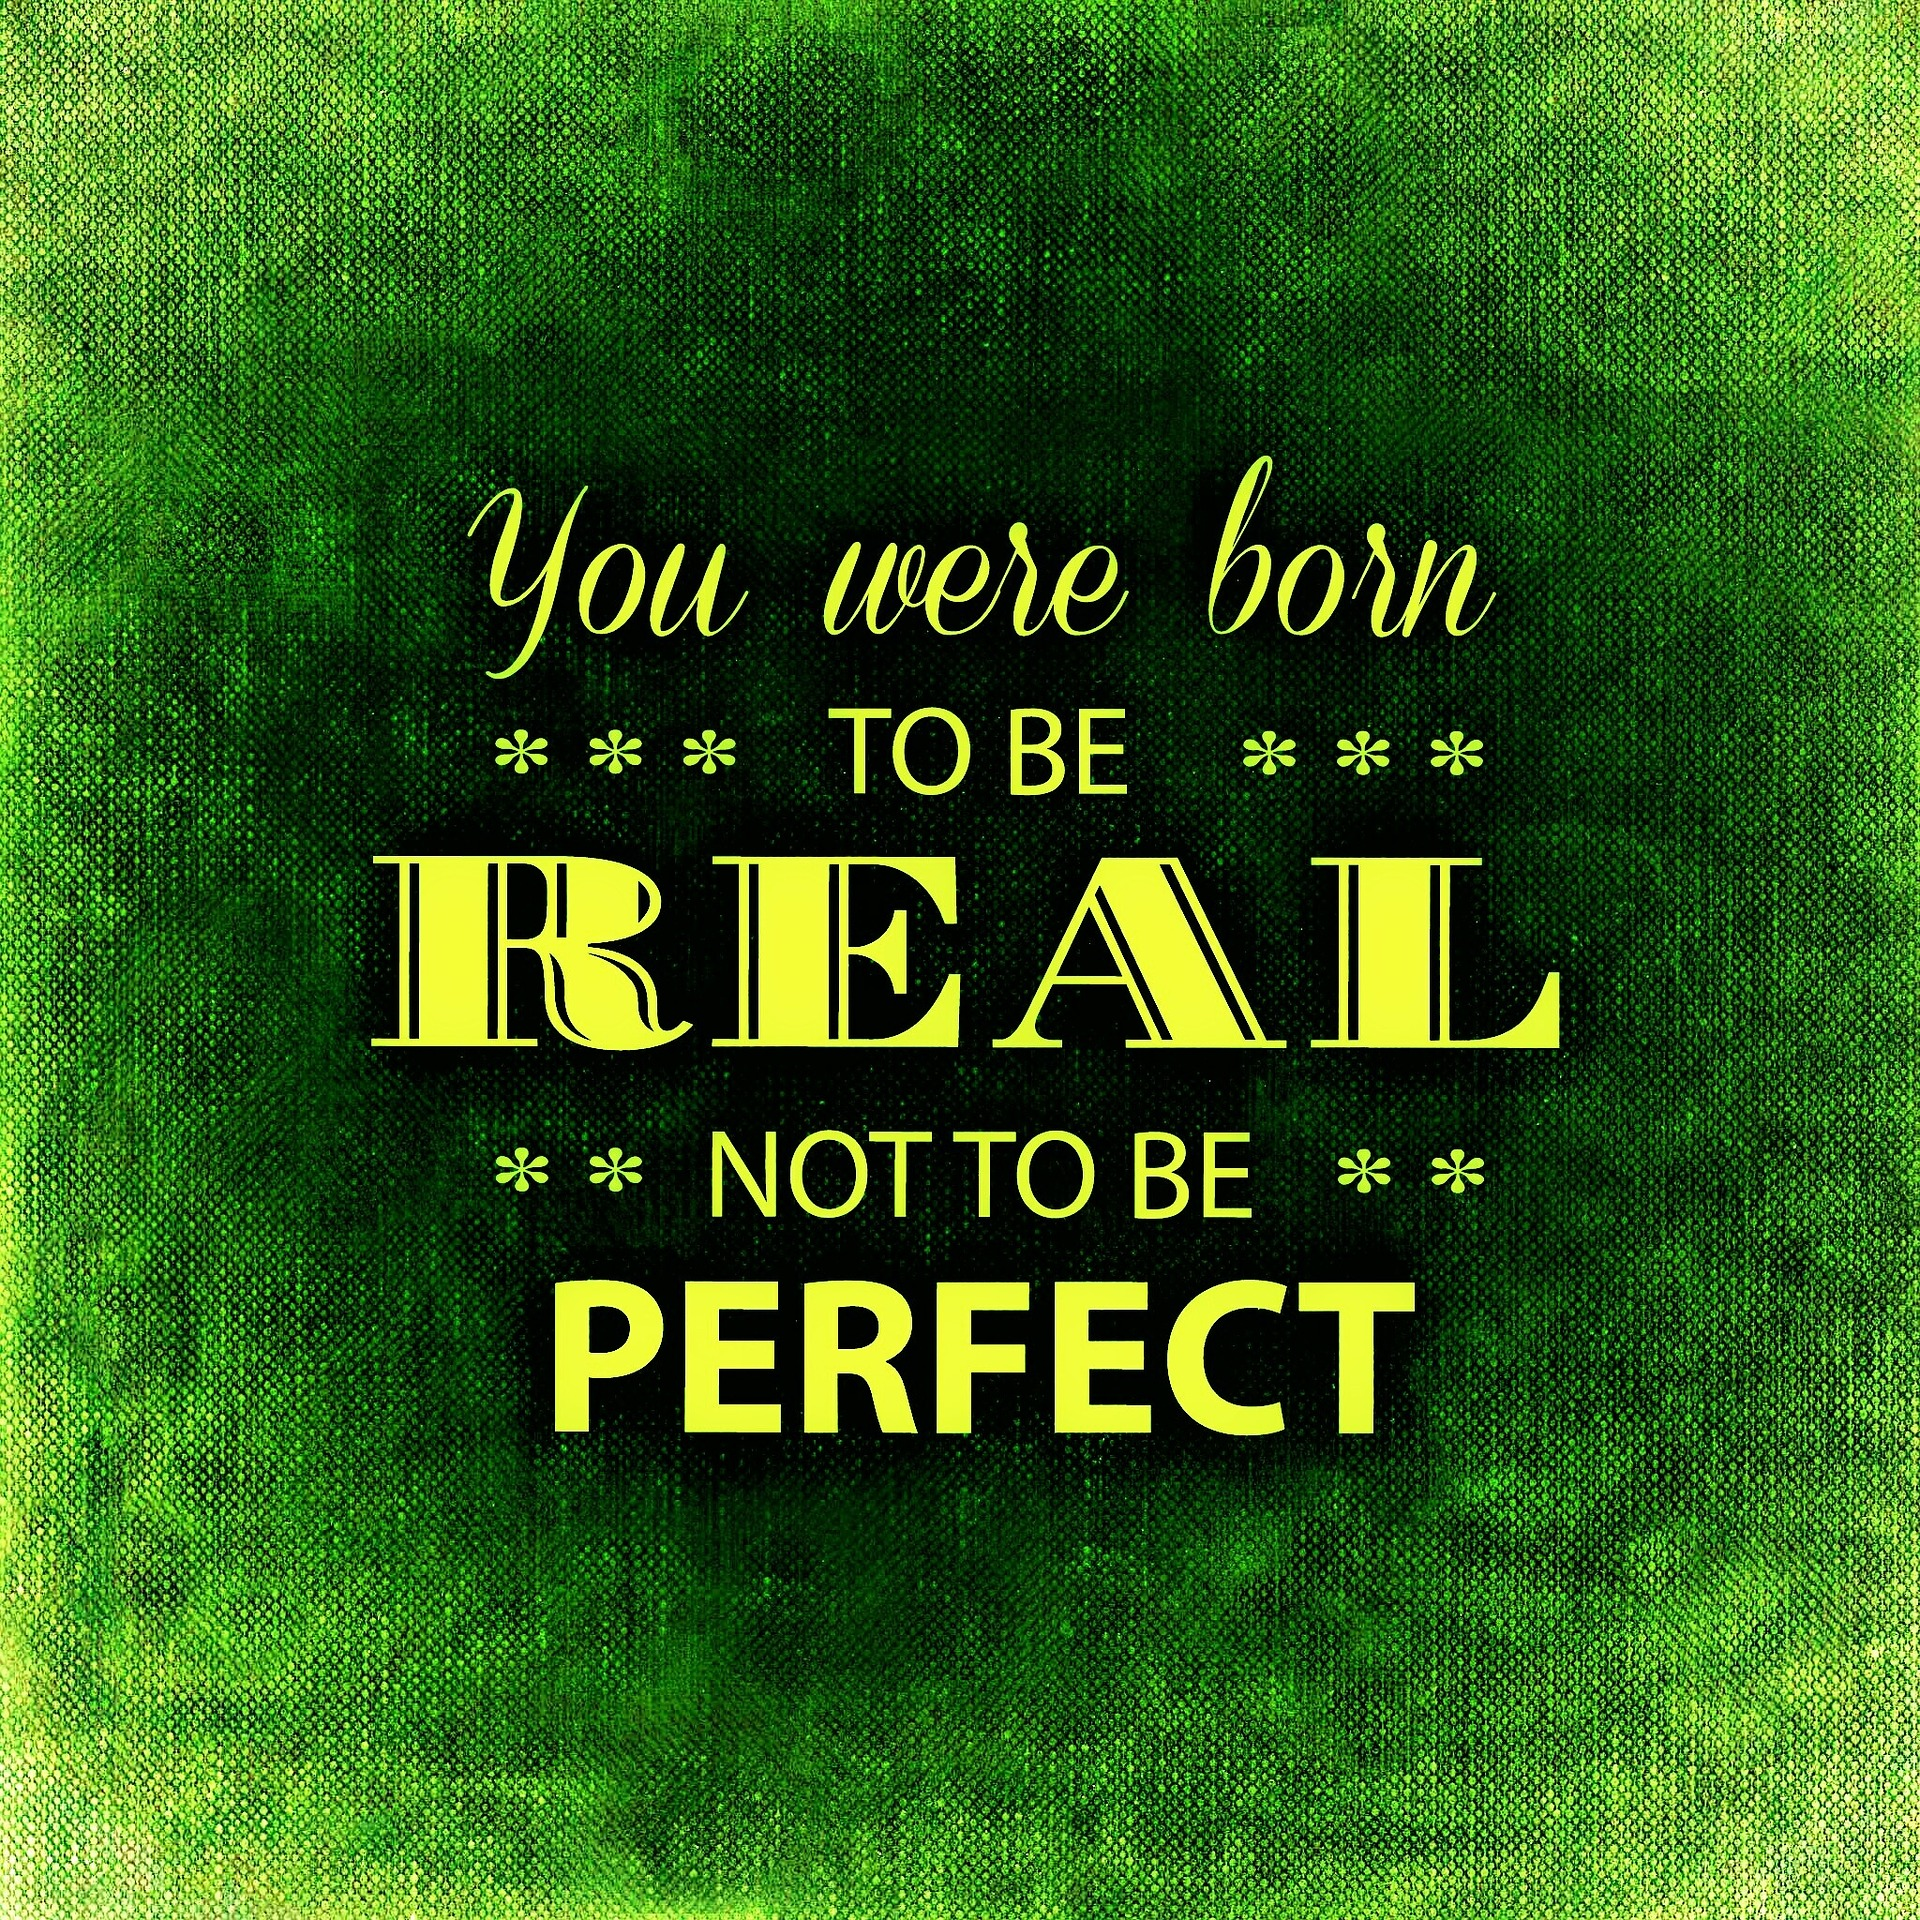 What's Your Communication Goal: Perfect or Real?